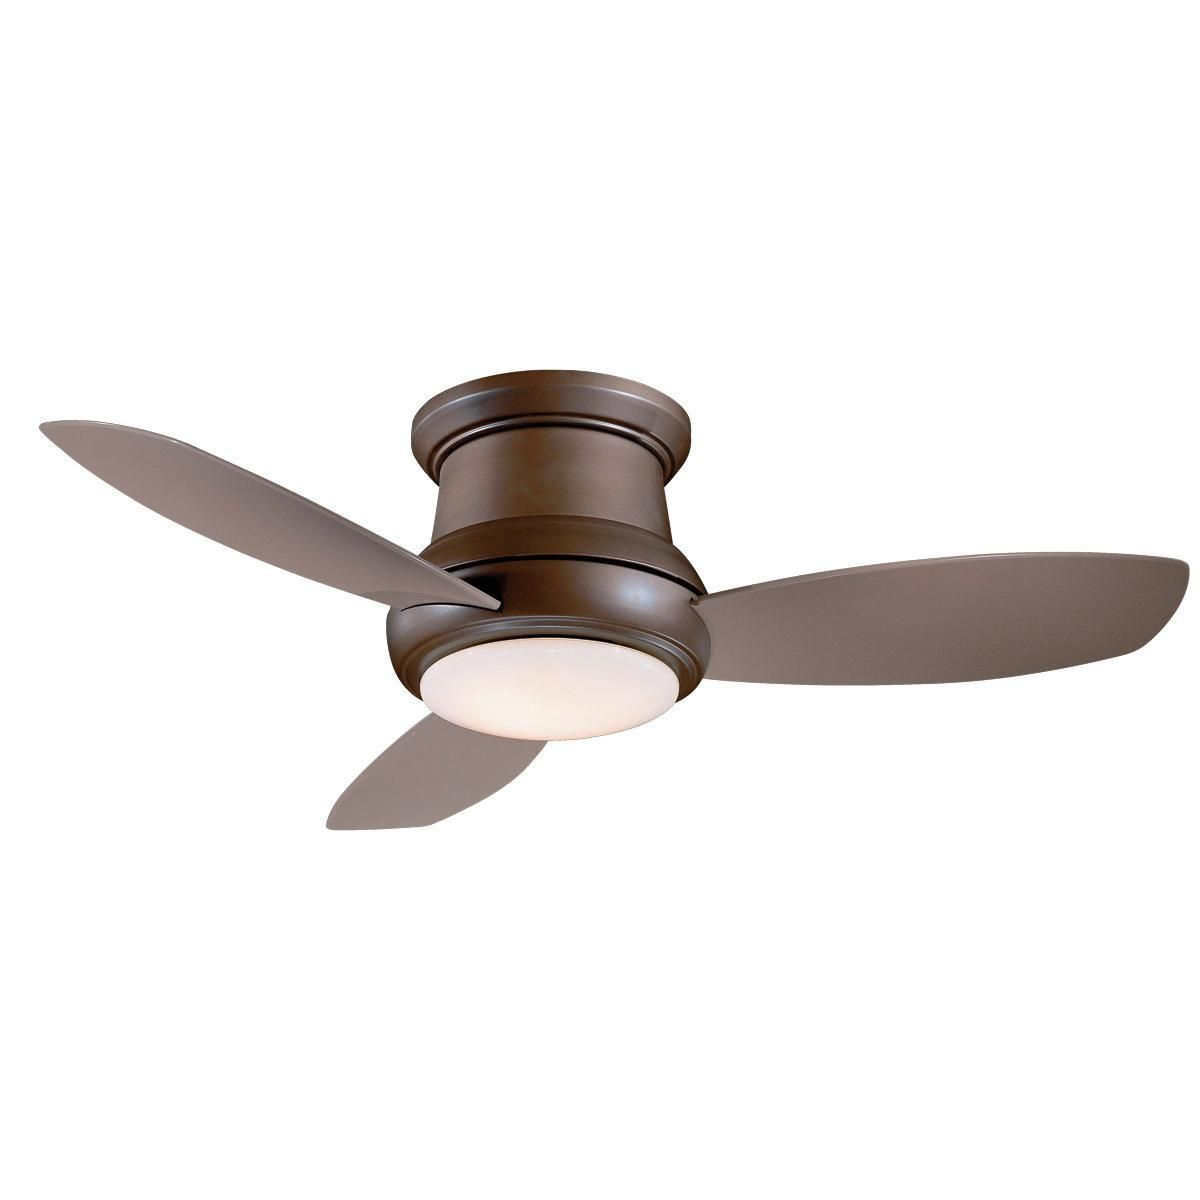 44 Low Ceiling Scoop Fan Flush Mount Ceiling Fan Ceiling Fan With Light Ceiling Fan